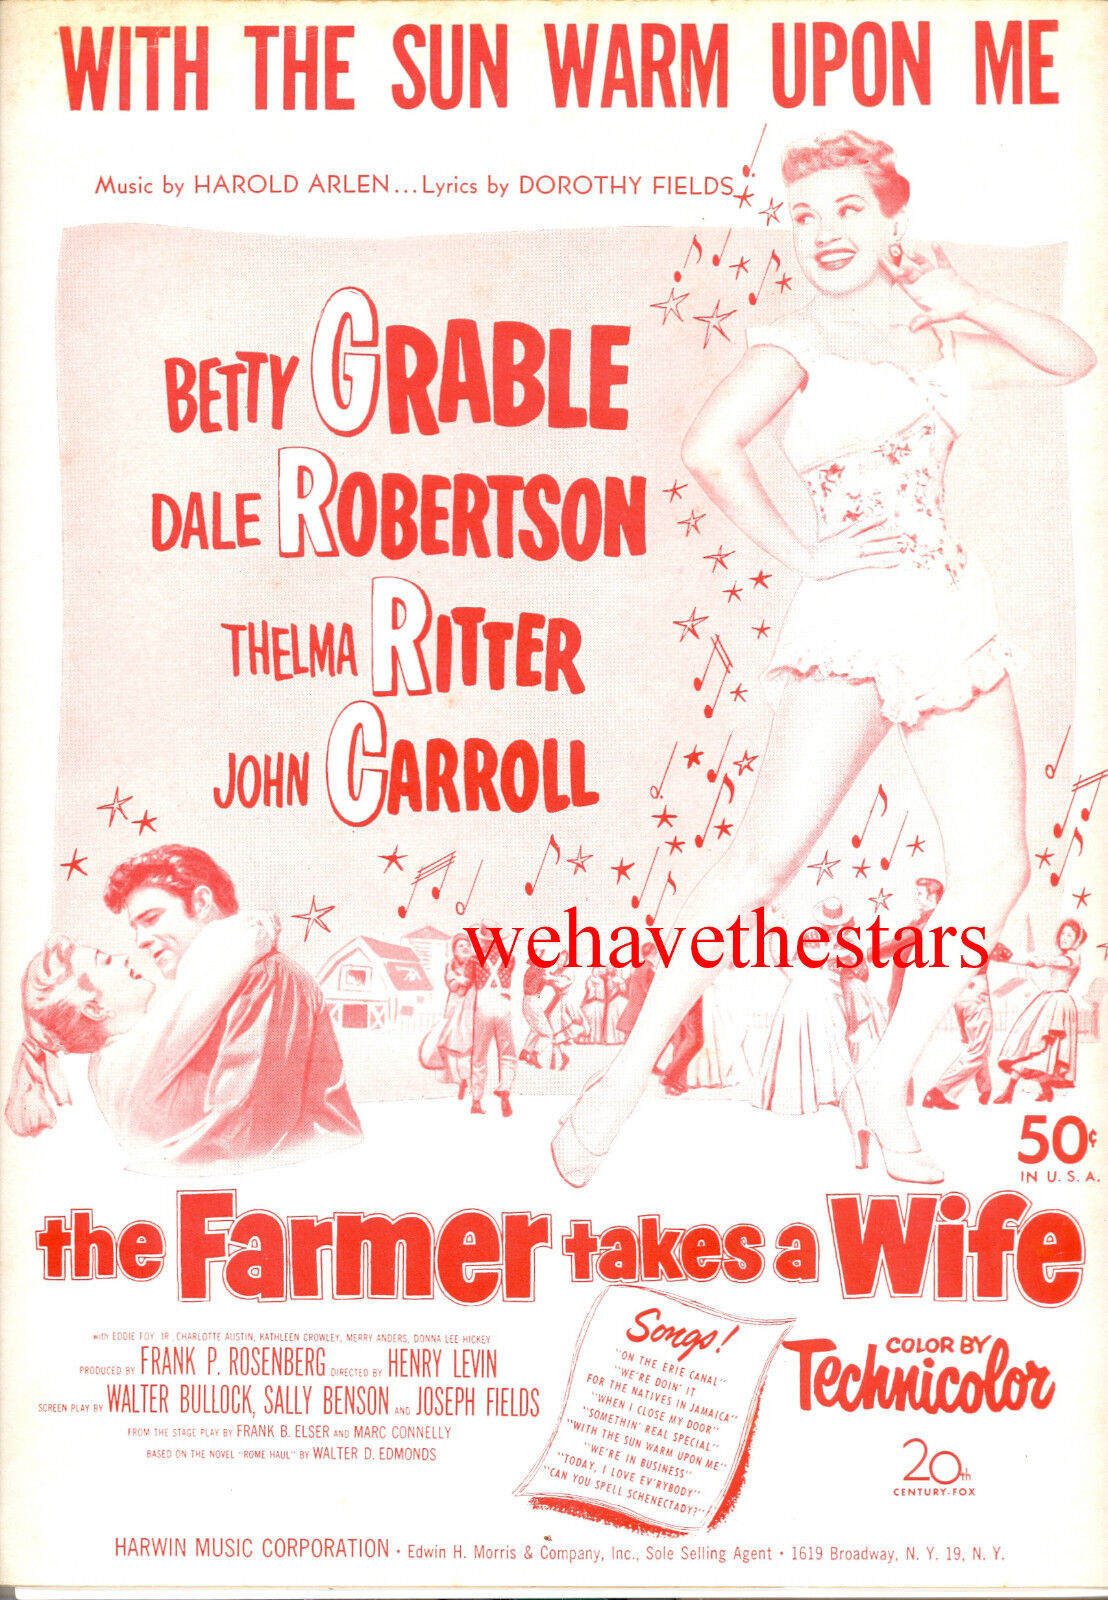 Farmer Takes A Wife Notenblatt   mit den Sonne Warme Upon Me   Betty Grable